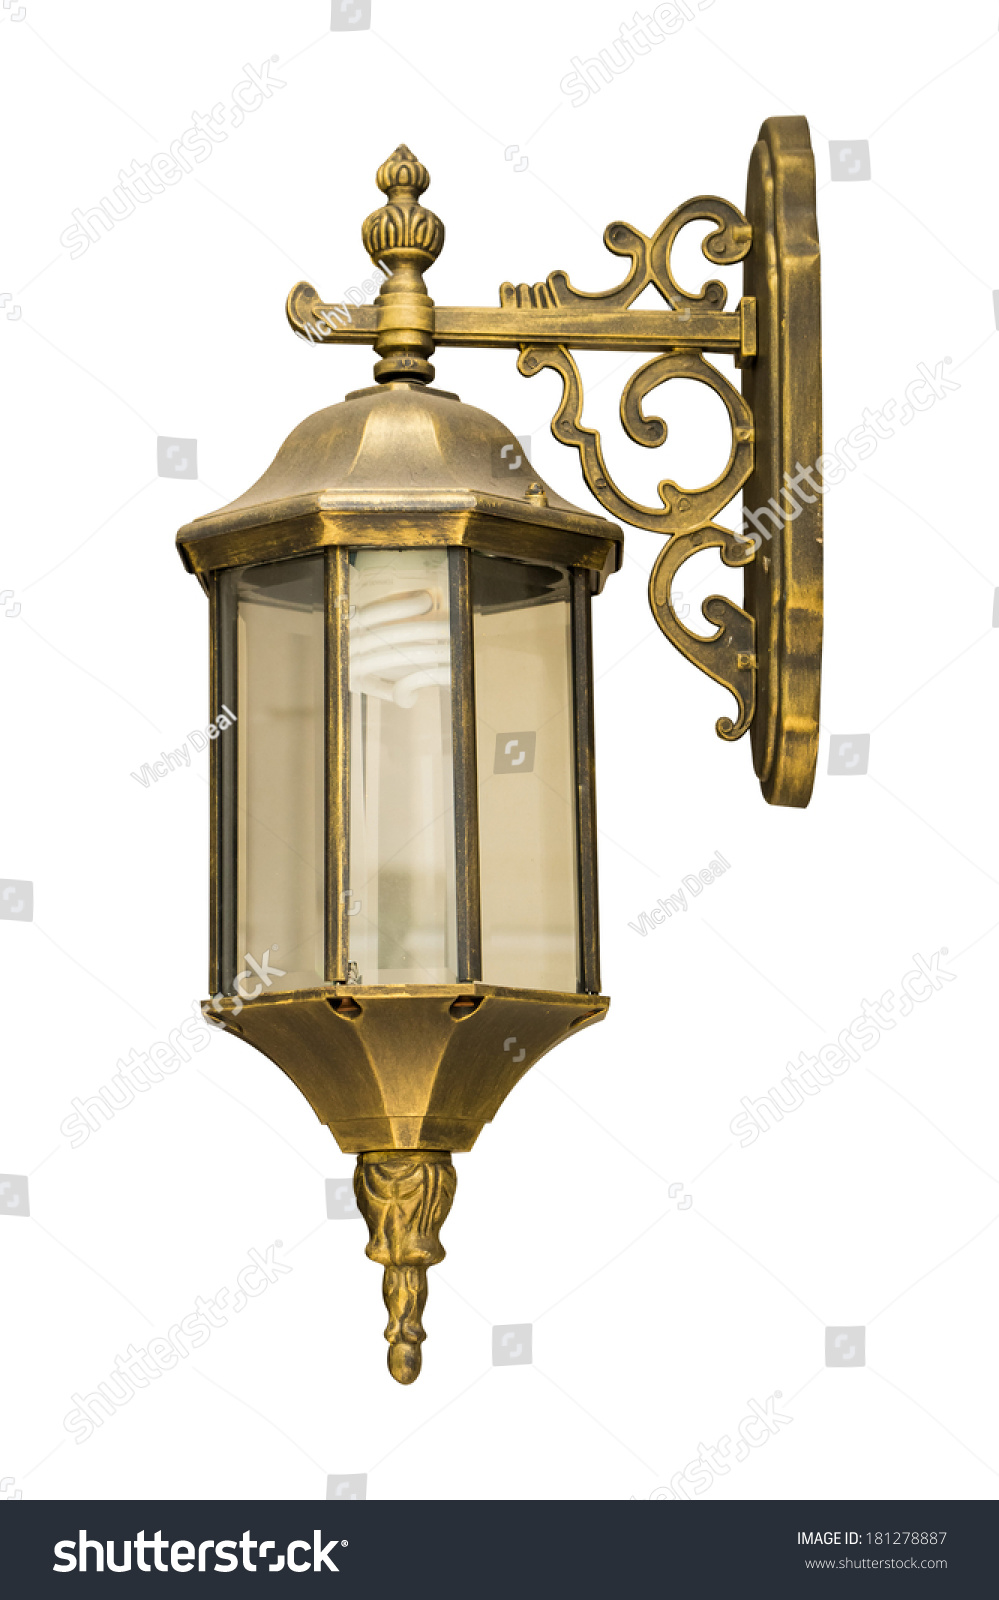 Old antique vintage lamps,isolated on white background, with clipping path